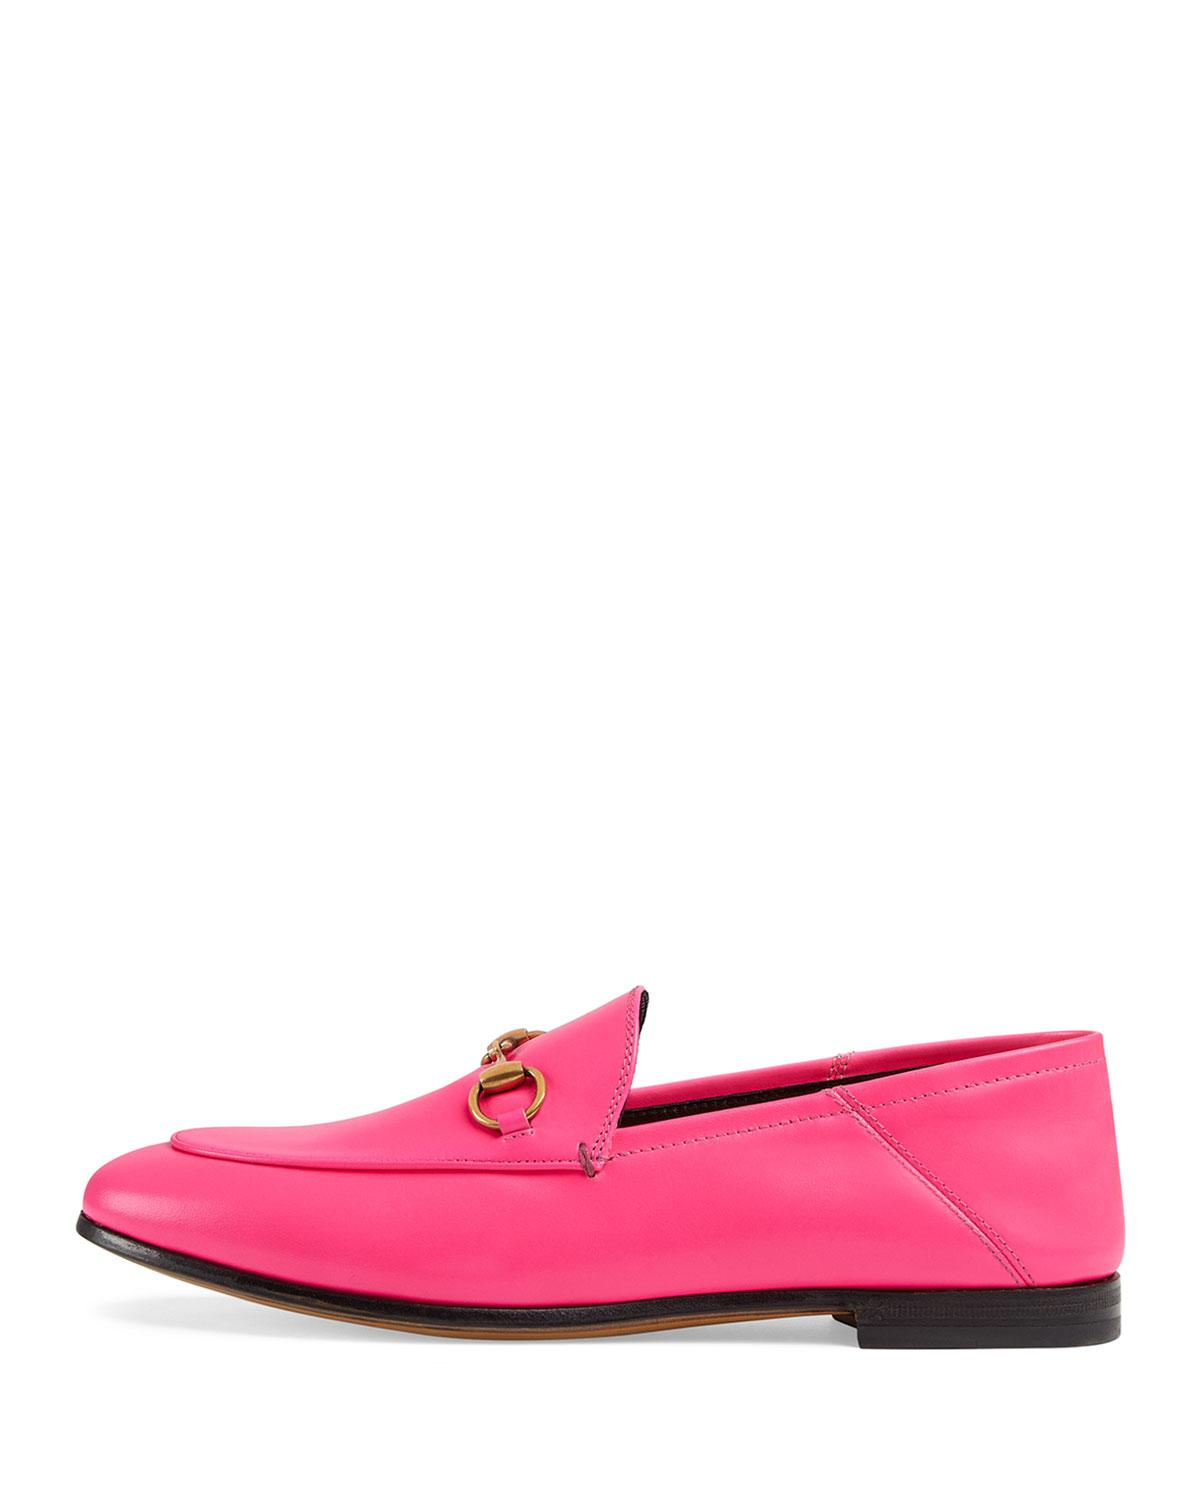 bdc3202fa23 Gucci Brixton Neon Leather Horsebit Loafers in Pink - Lyst